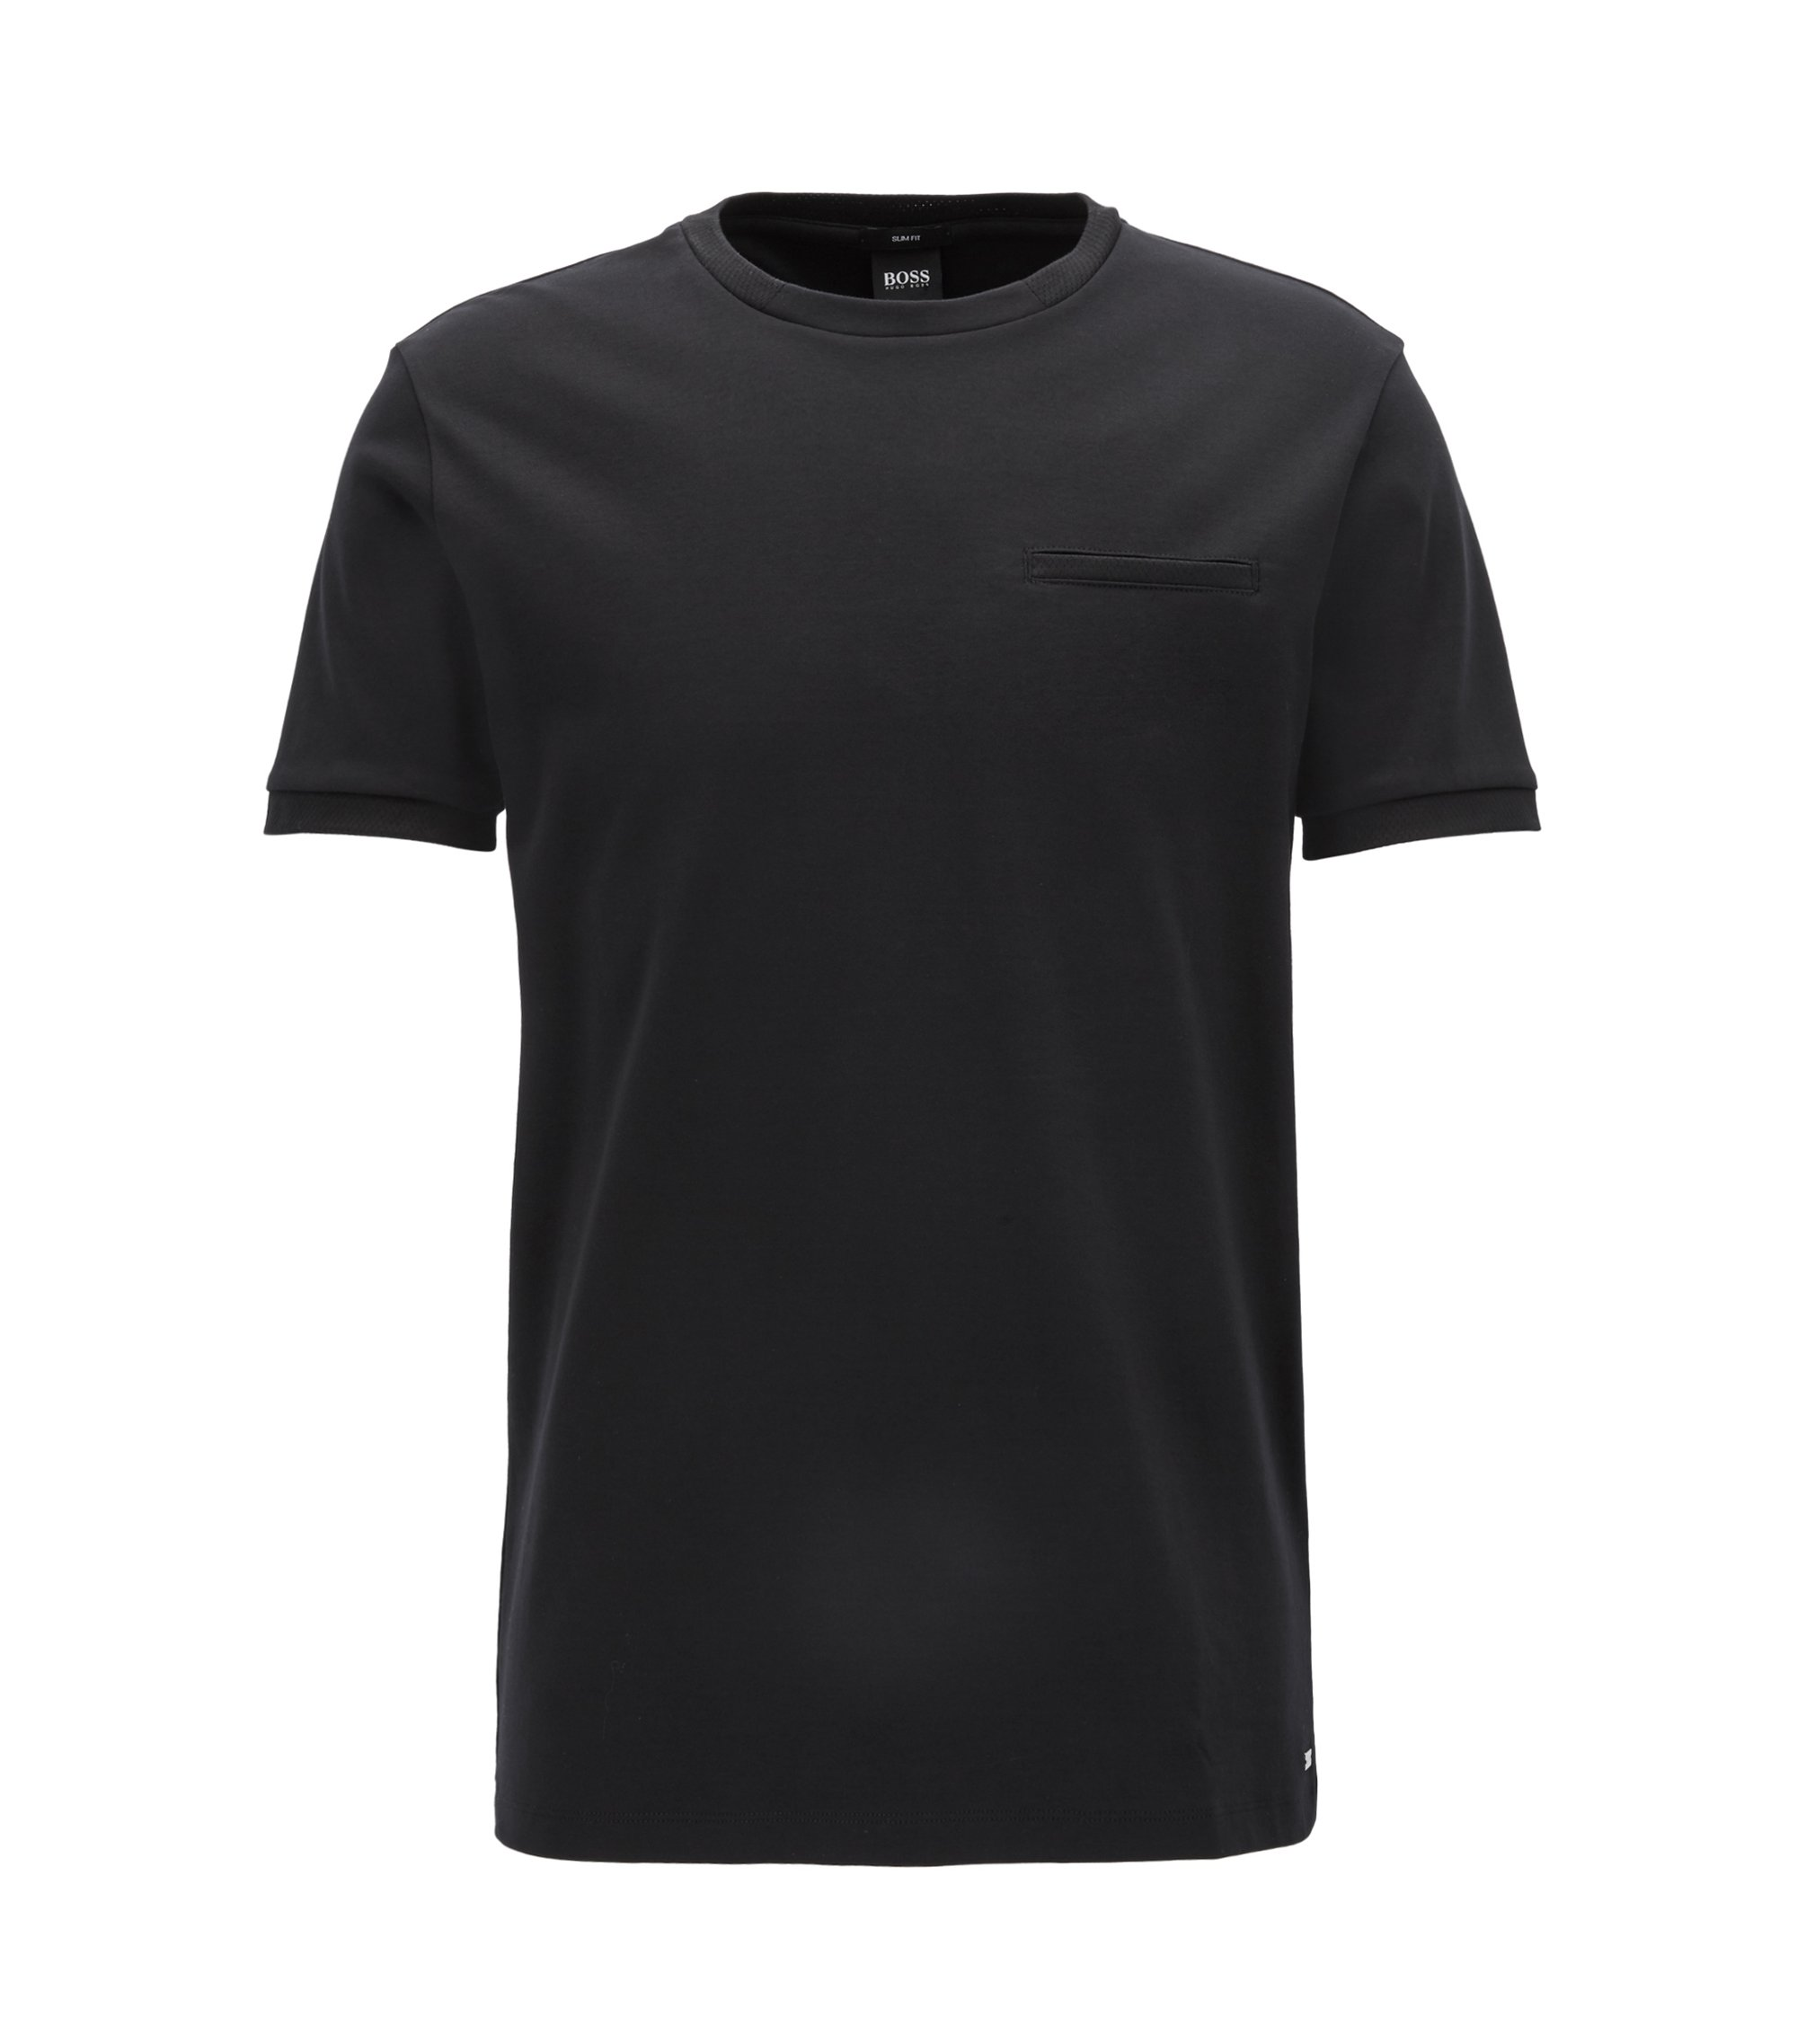 T-shirt Slim Fit Mercedes-Benz en coton interlock, Noir